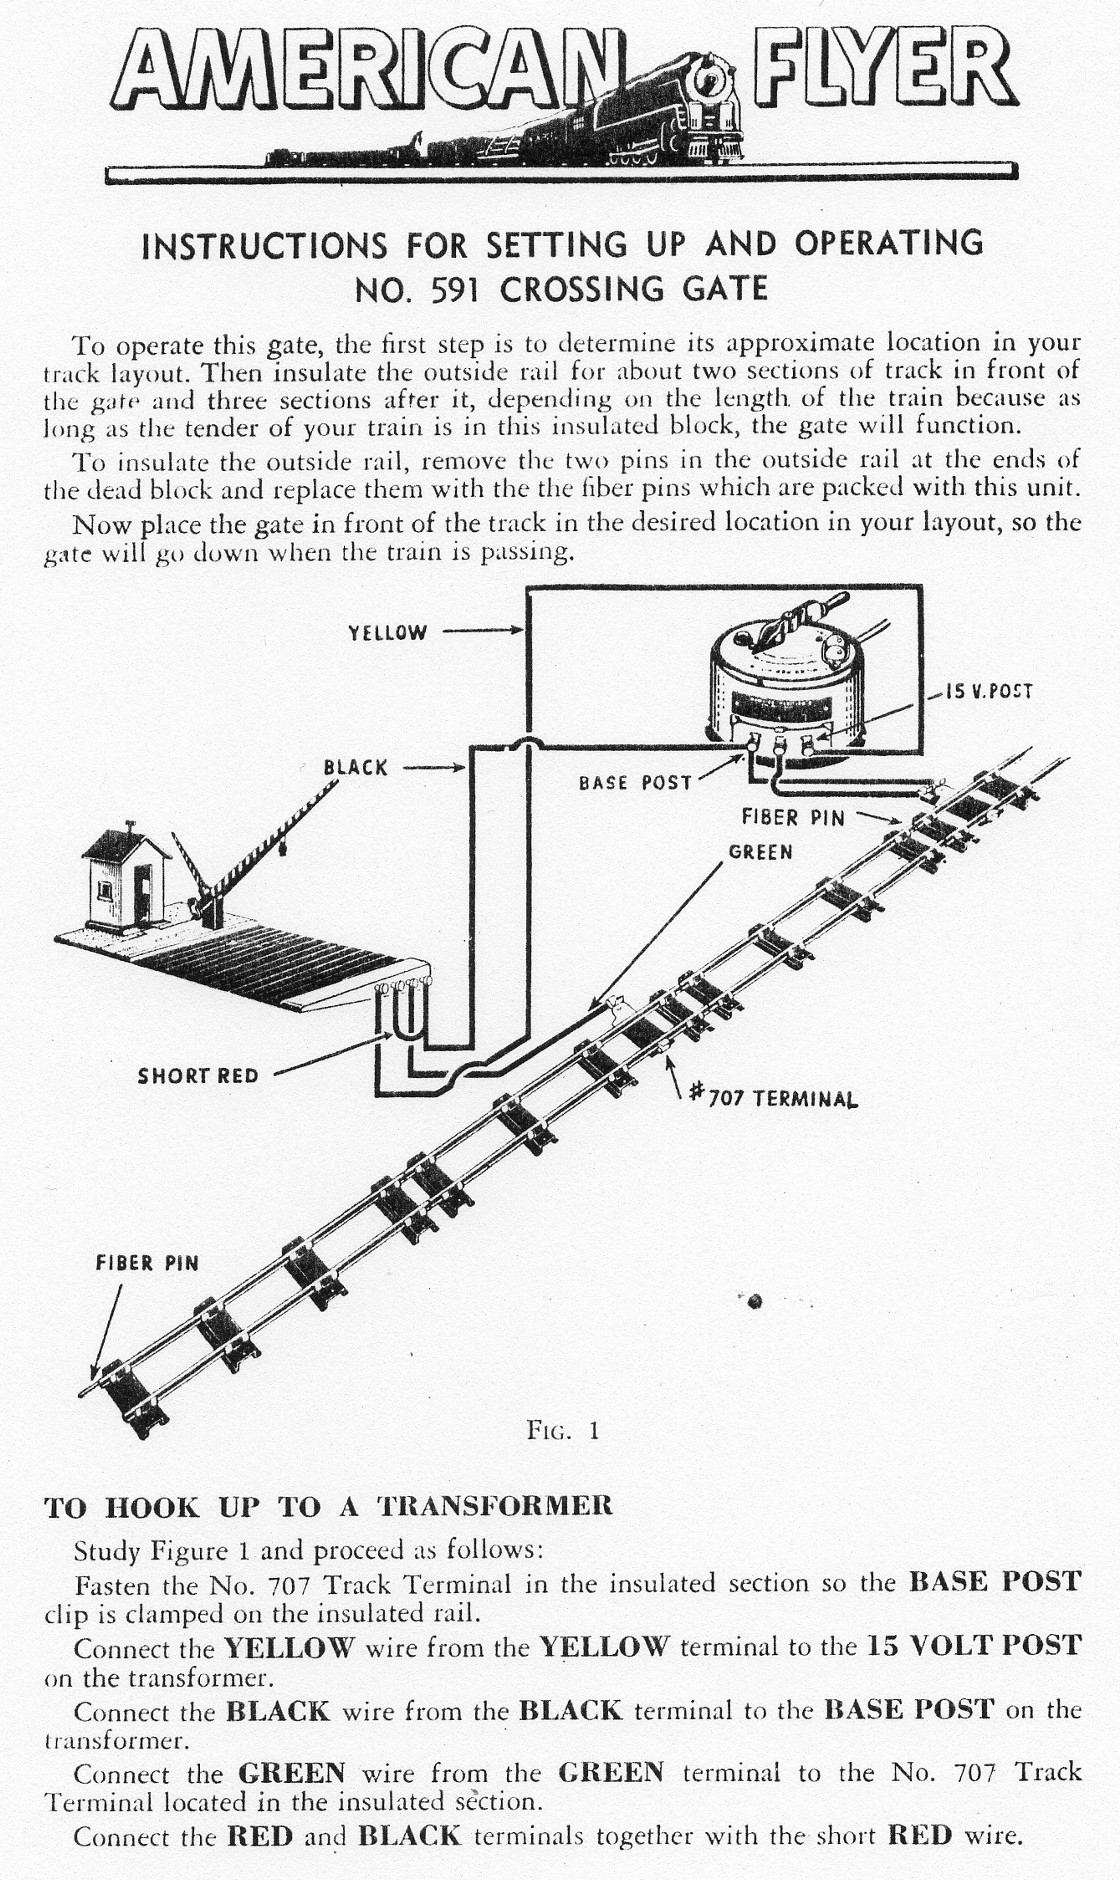 Instructions for Setting Up and Operating No. 591 Crossing Gate - Figure 1